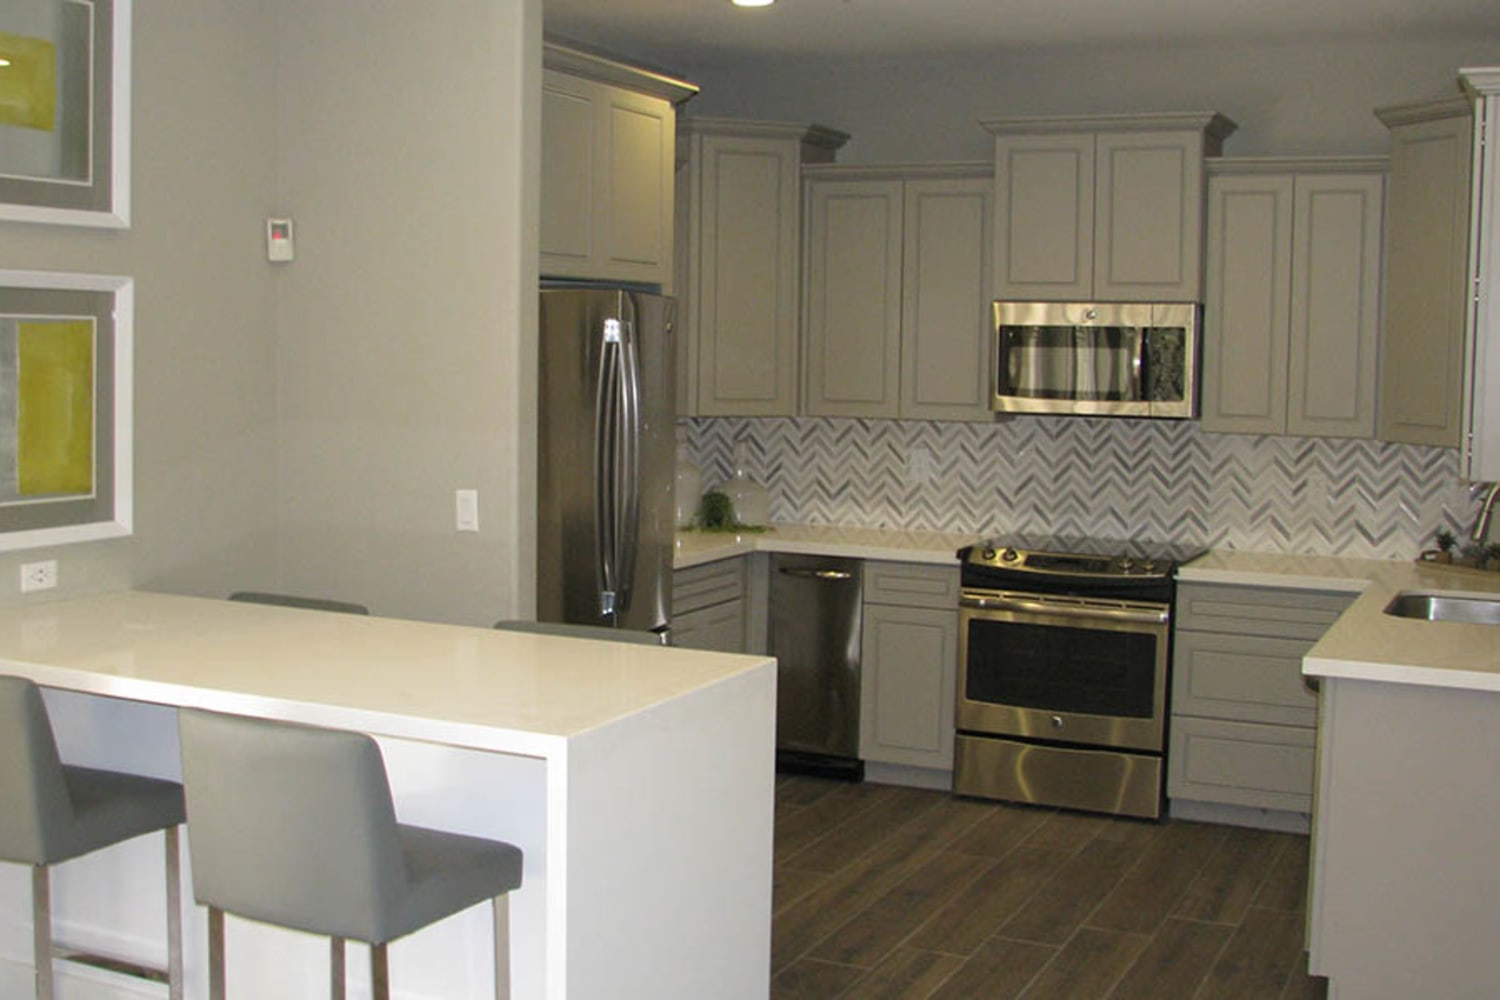 Well appointed kitchen at Ocotillo Bay Apartments in Chandler, Arizona